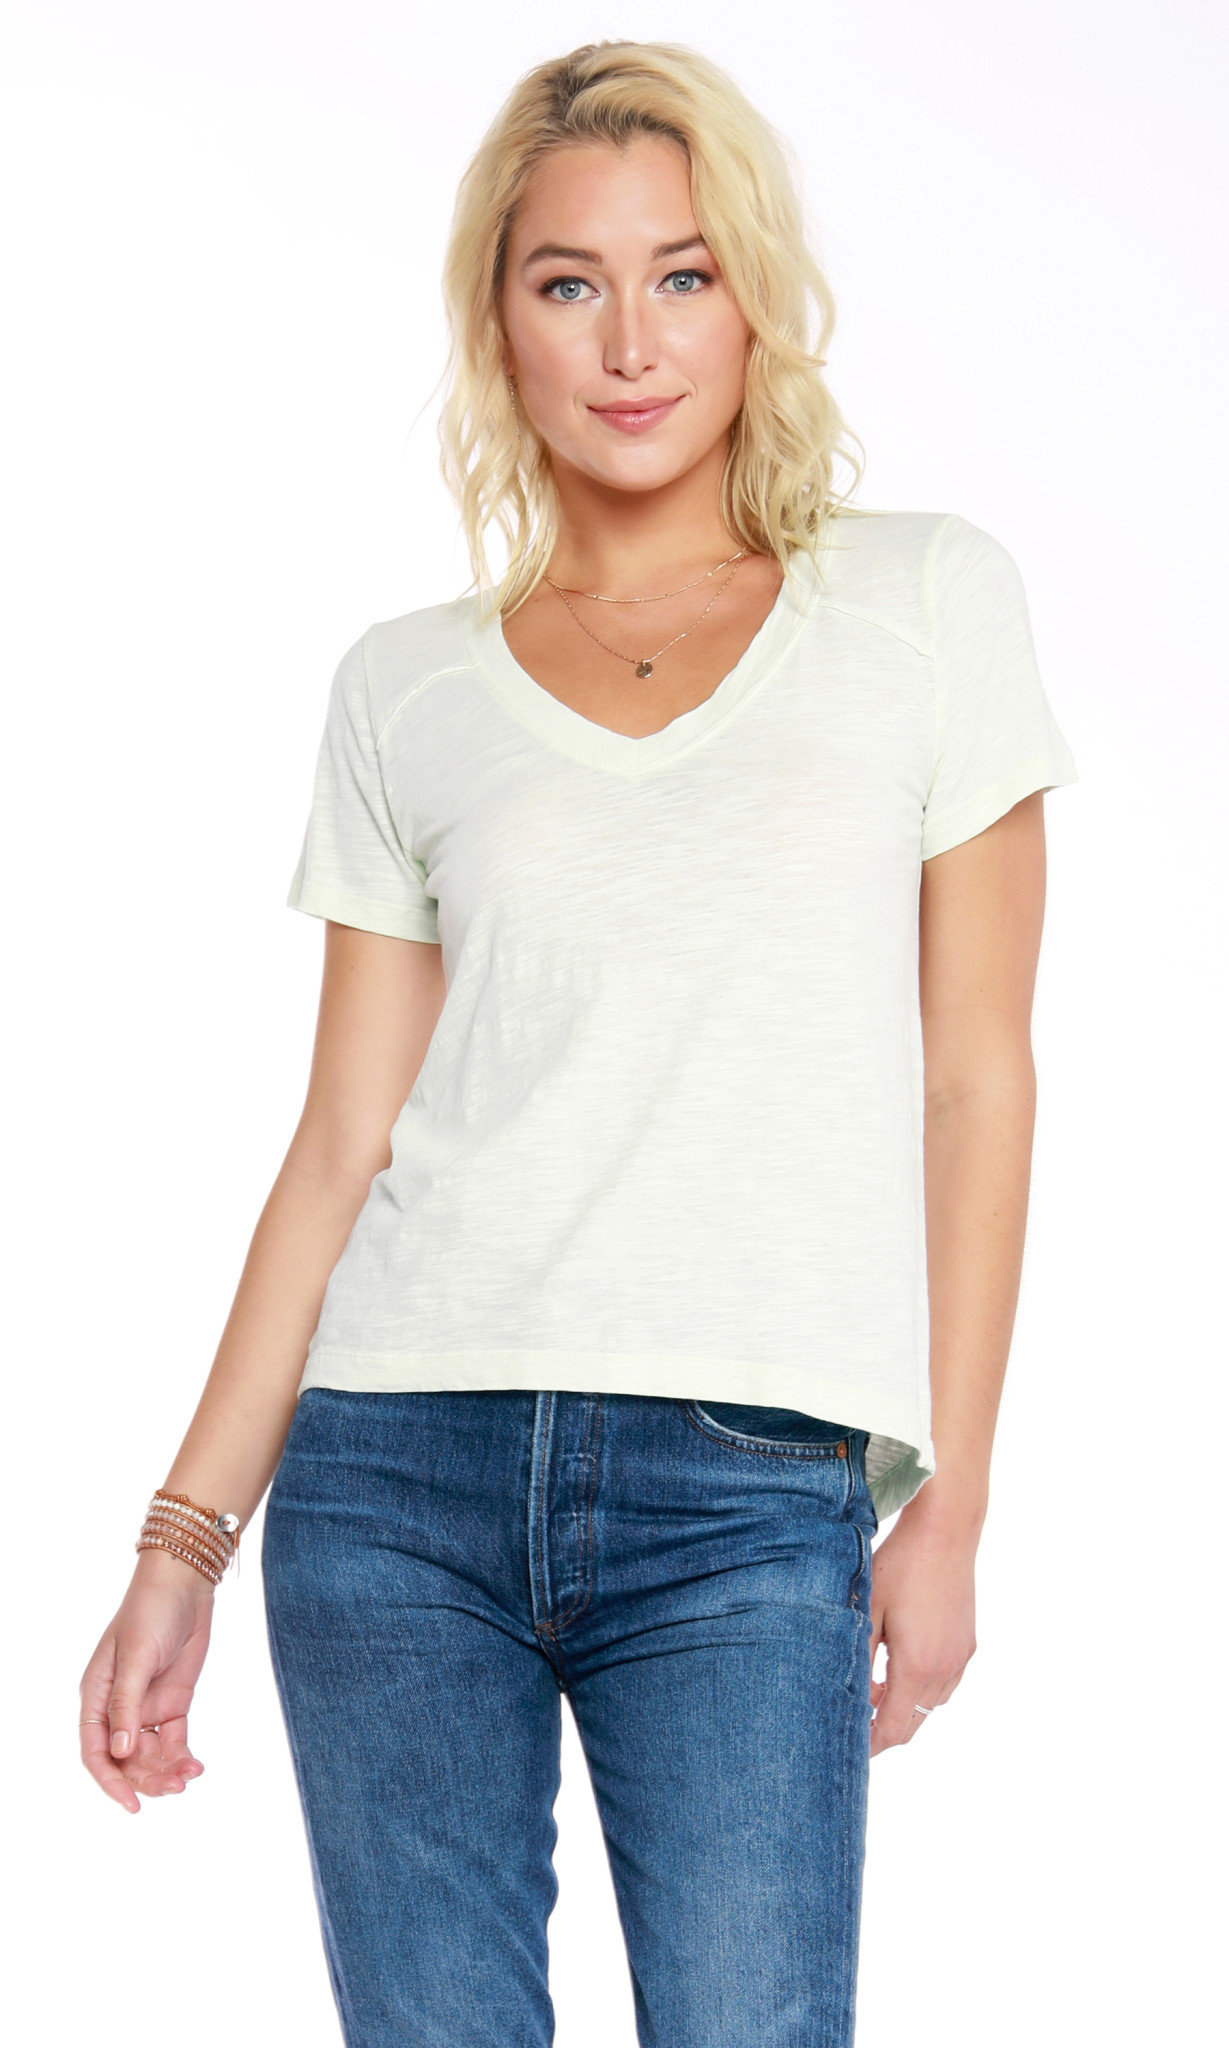 Cotton Short Sleeve V Neck Tee Shirt